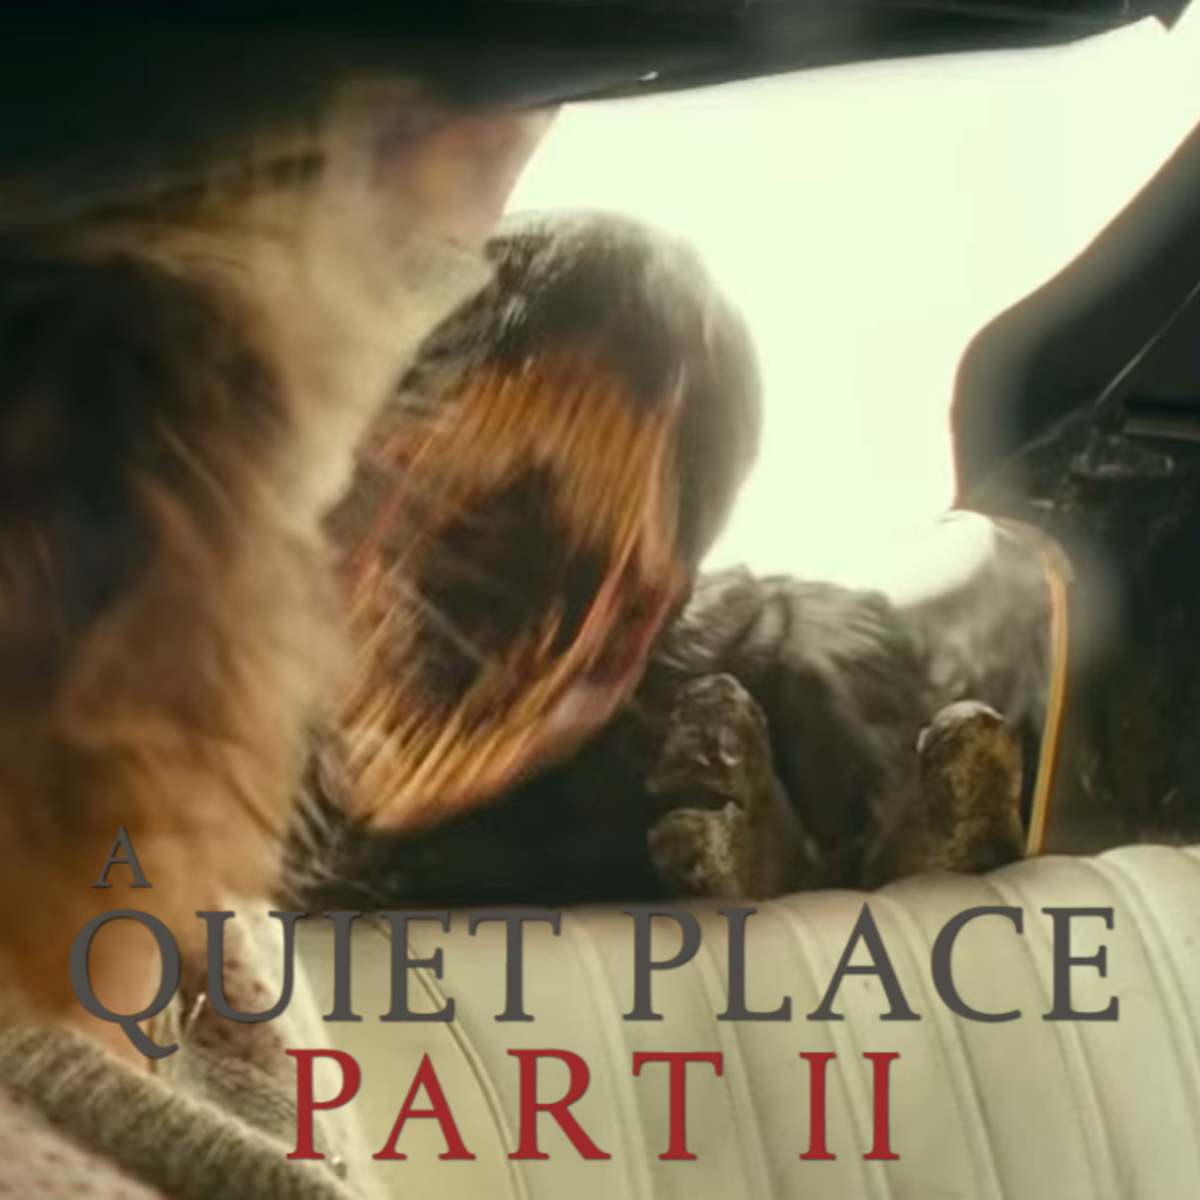 a-quiet-place-part-ii-was-it-worth-the-wait